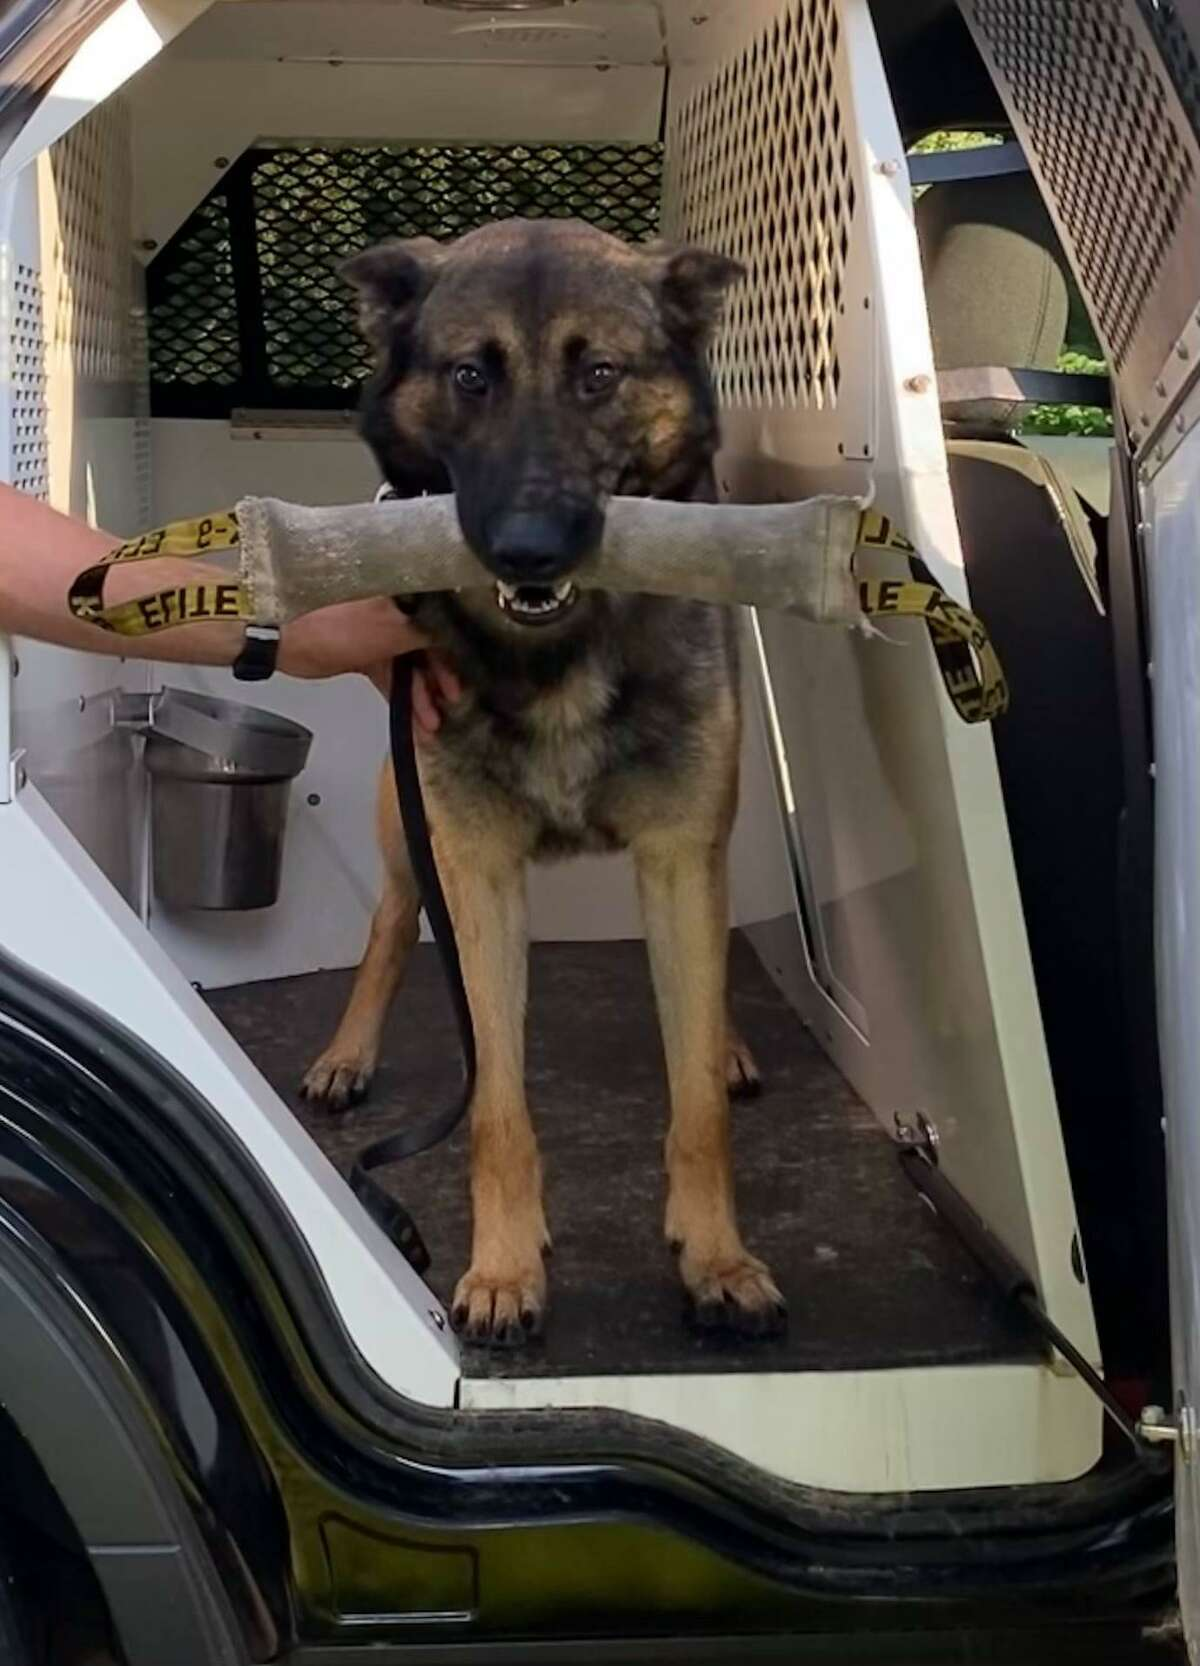 Jax, a German Shepherd and Belgian Malinois mix, is almost 2-years-old. He is one of two police dogs recently added to the Groton, Conn., police force.